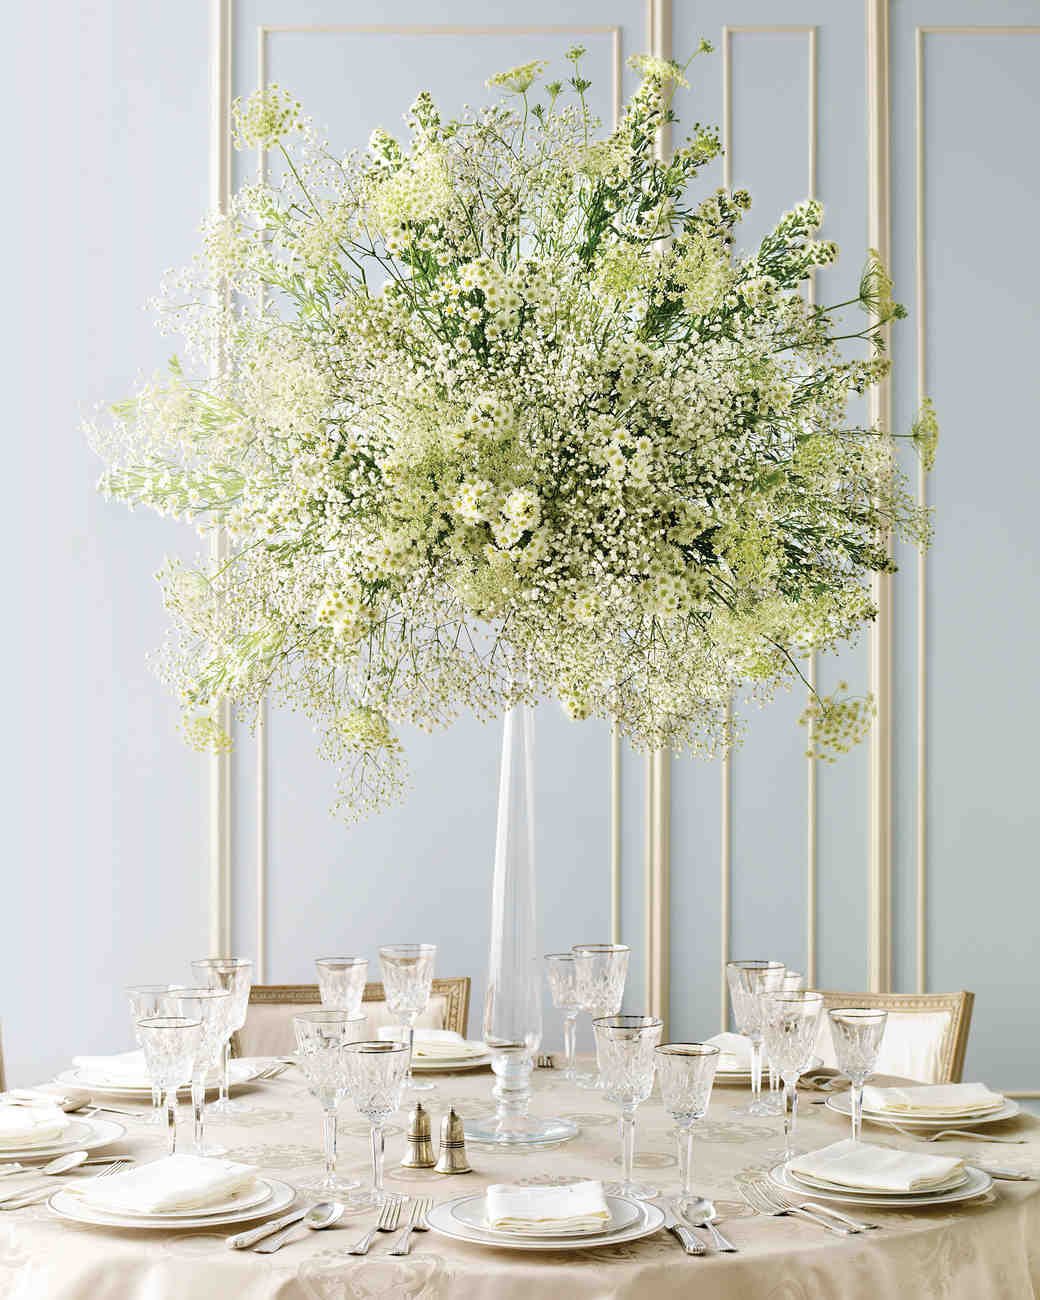 Elegant and inexpensive wedding flower ideas martha for Cheap elegant wedding decorations